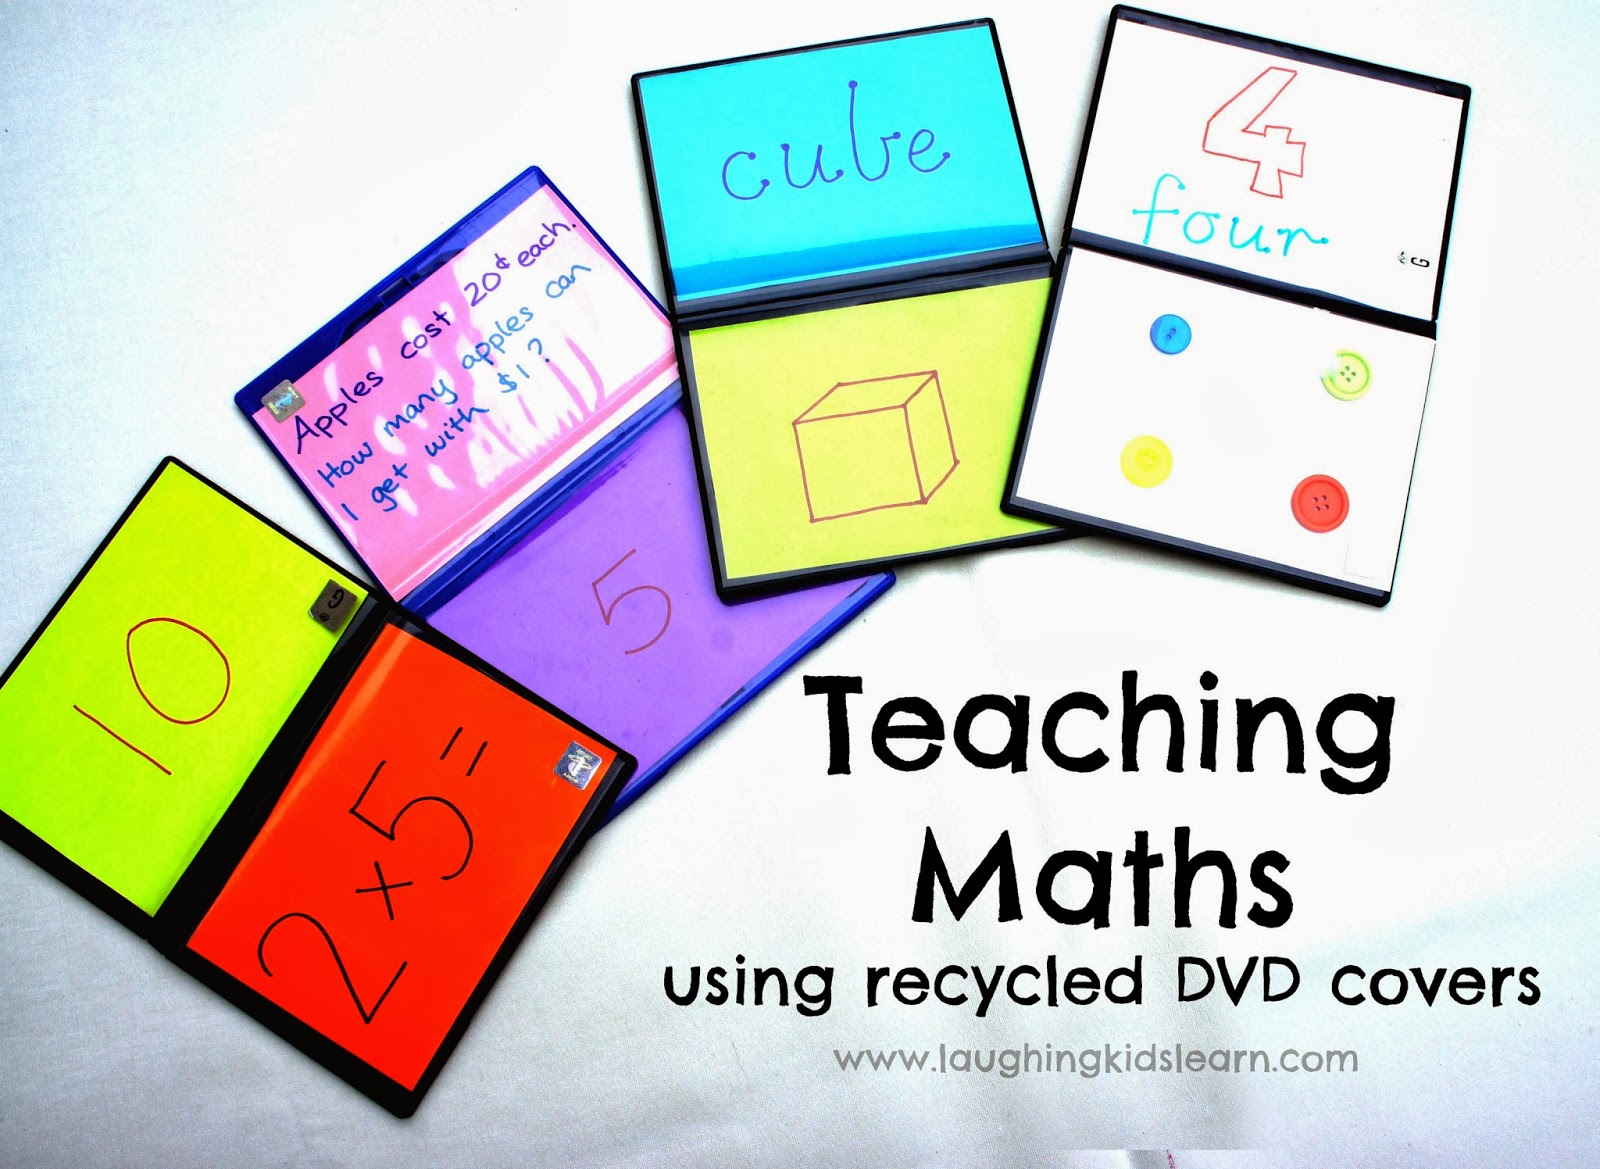 Teaching Maths using Recycled DVD Covers - Laughing Kids Learn